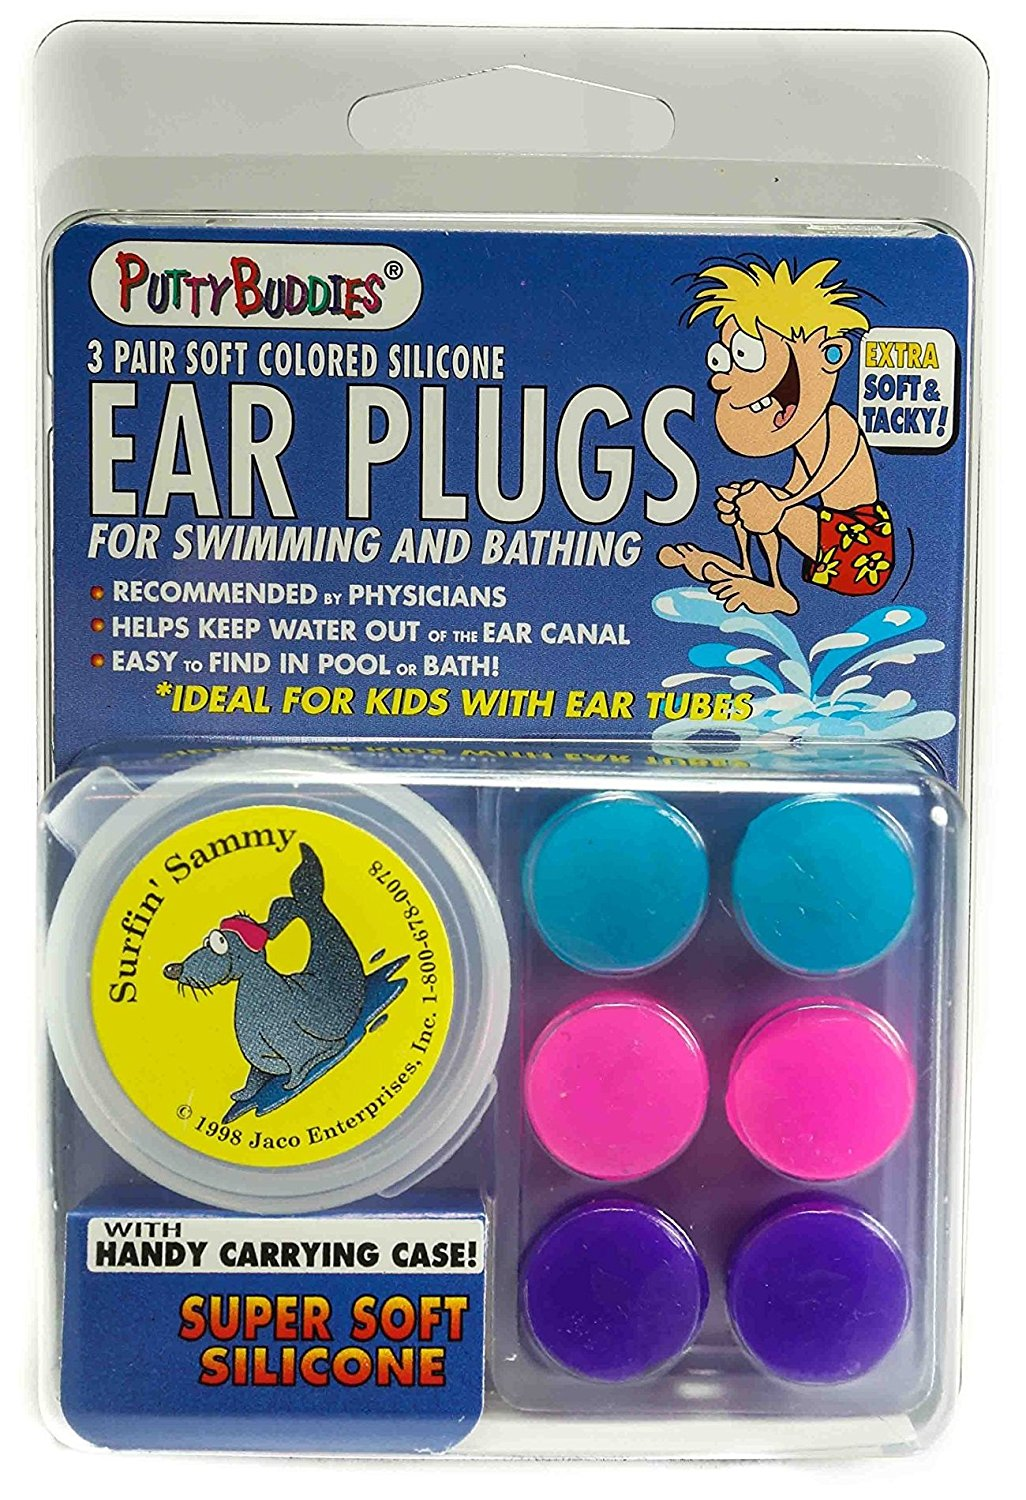 where to buy ear plugs for swimming? They have great trusted brands on Amazon